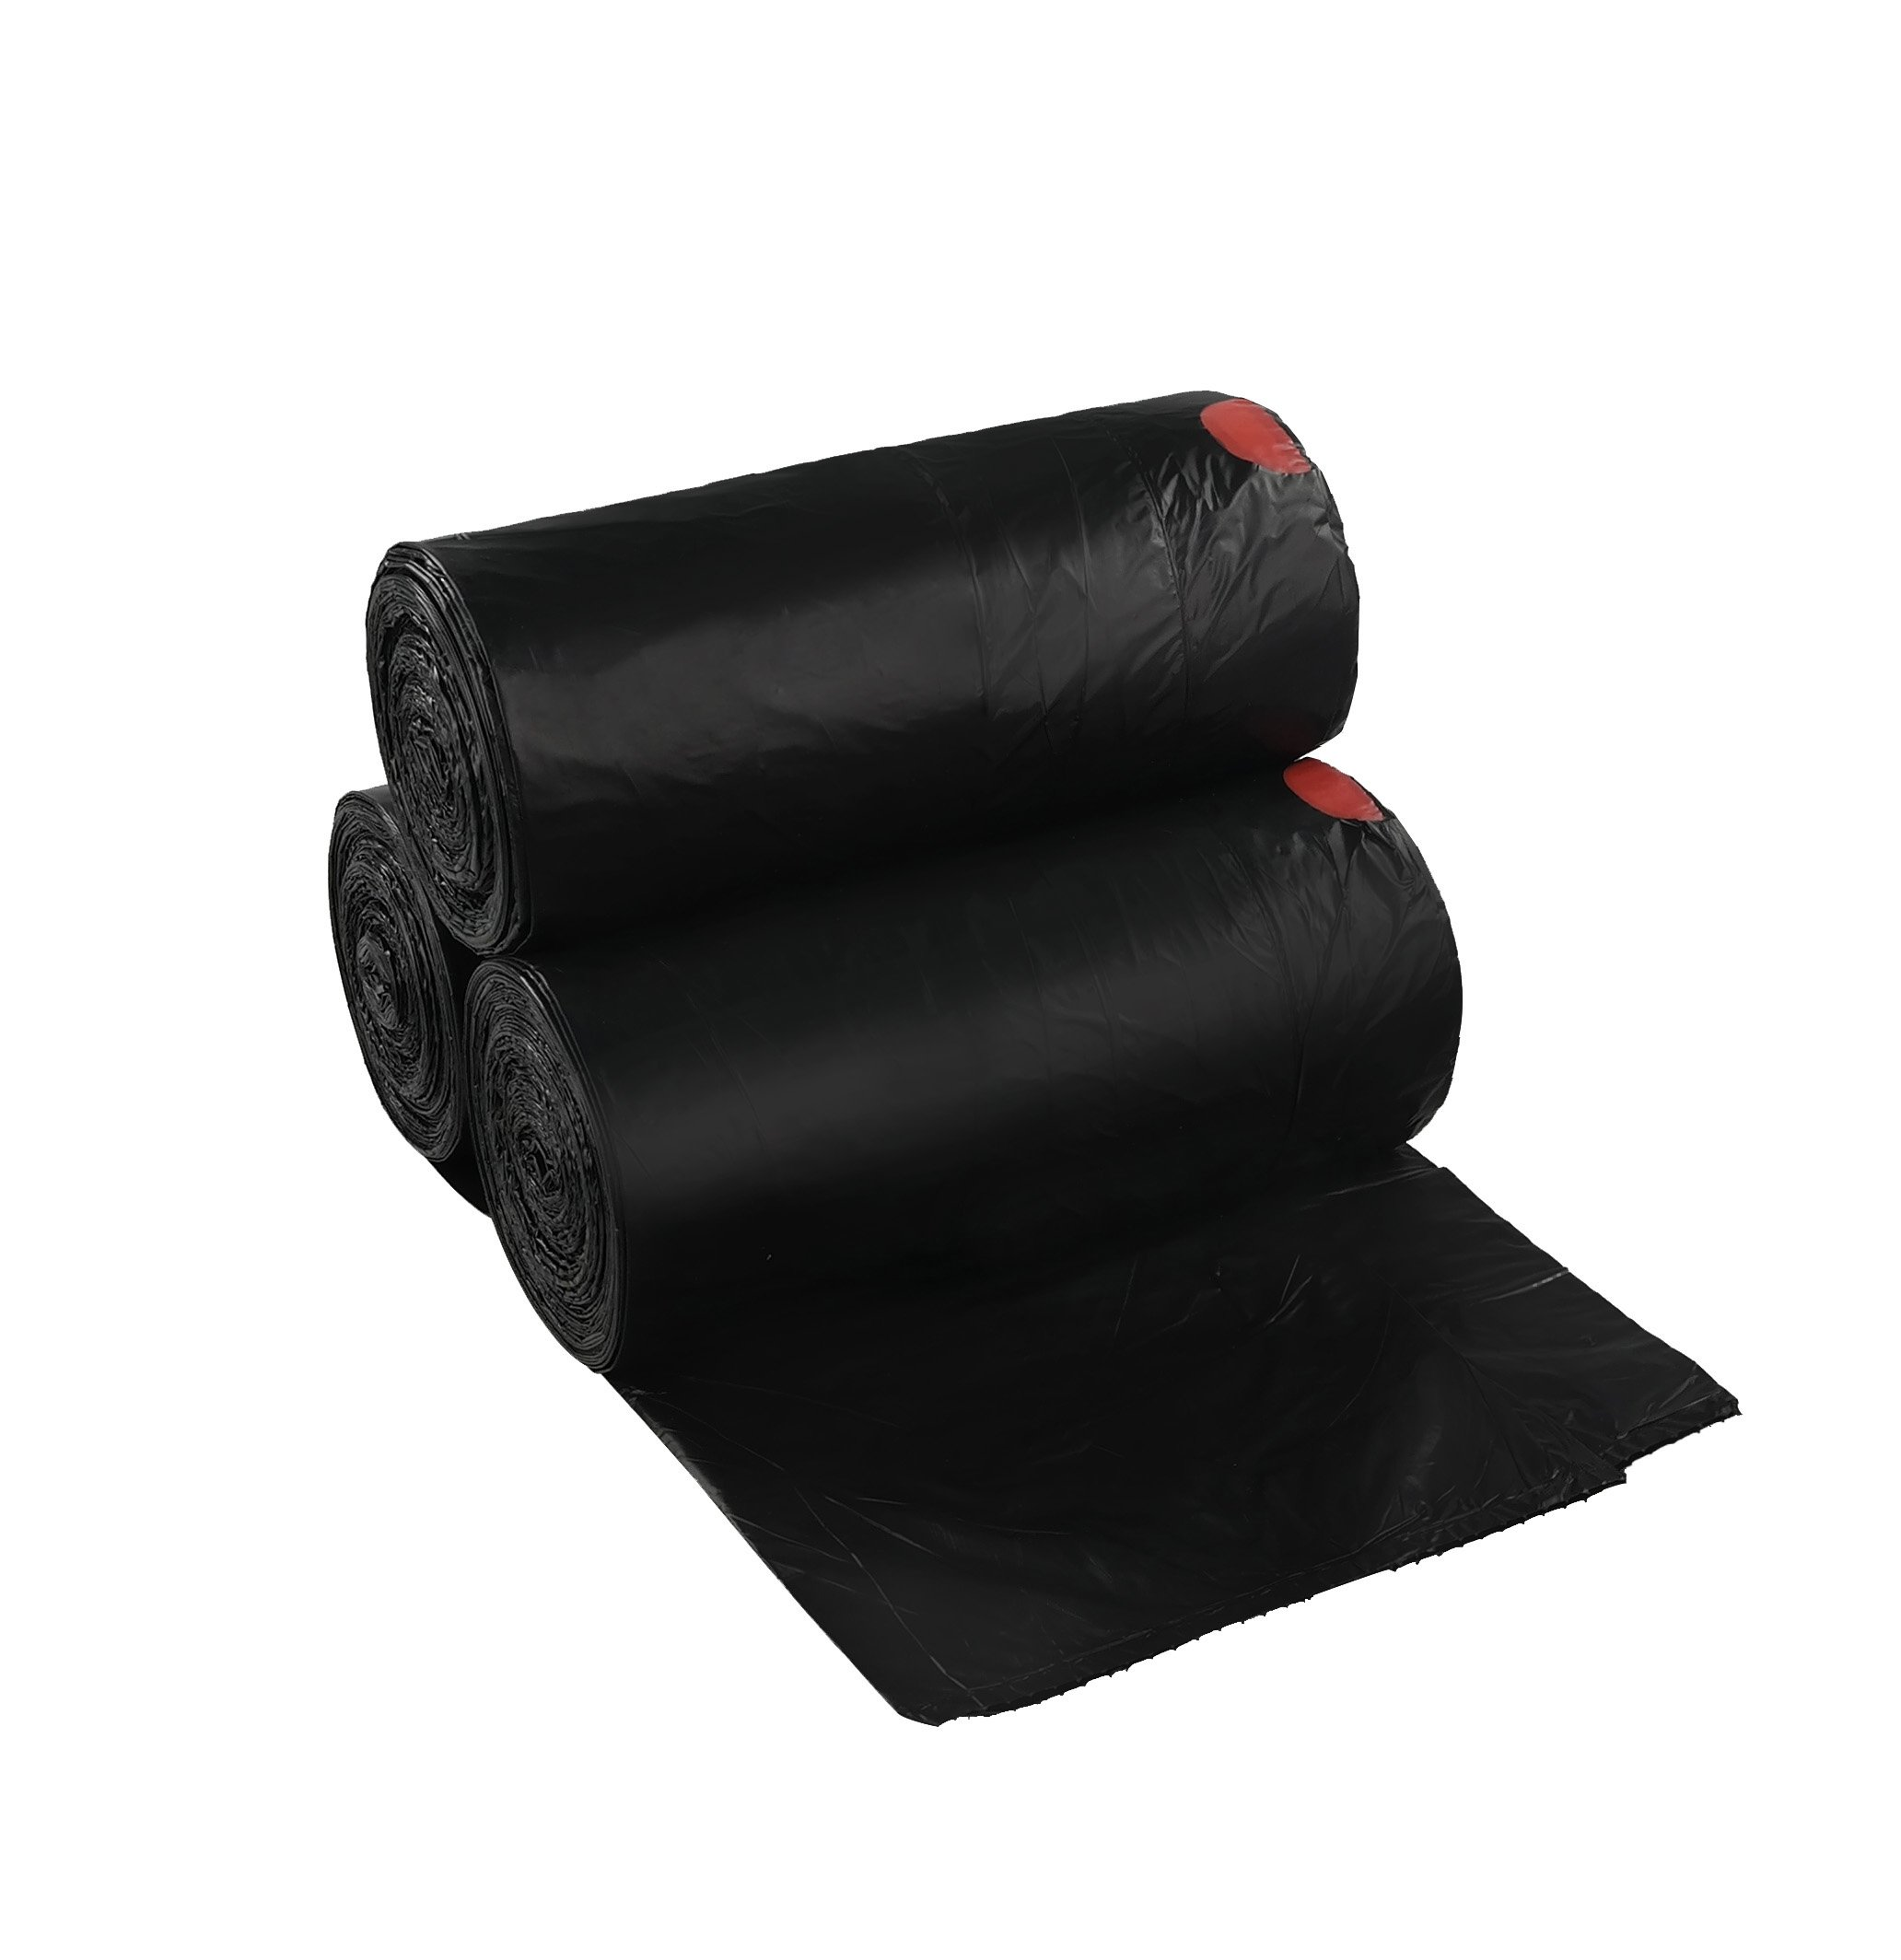 Begale 13 Gallon Drawstring Medium Trash Bags, Black, 110 Counts/ 3 Rolls by Begale